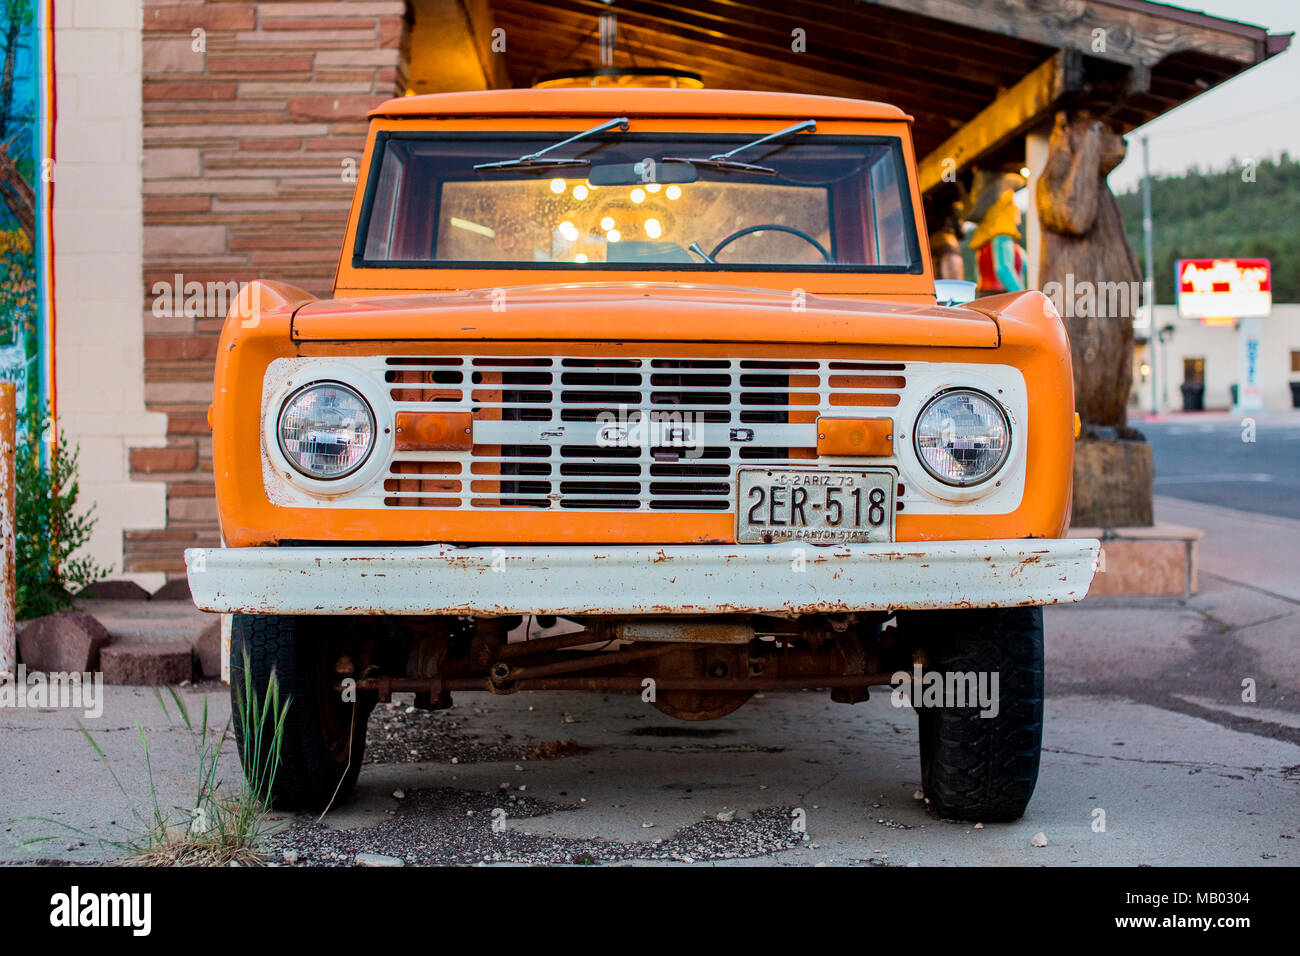 An old classic orange Ford pick up truck Stock Photo: 178867252 - Alamy